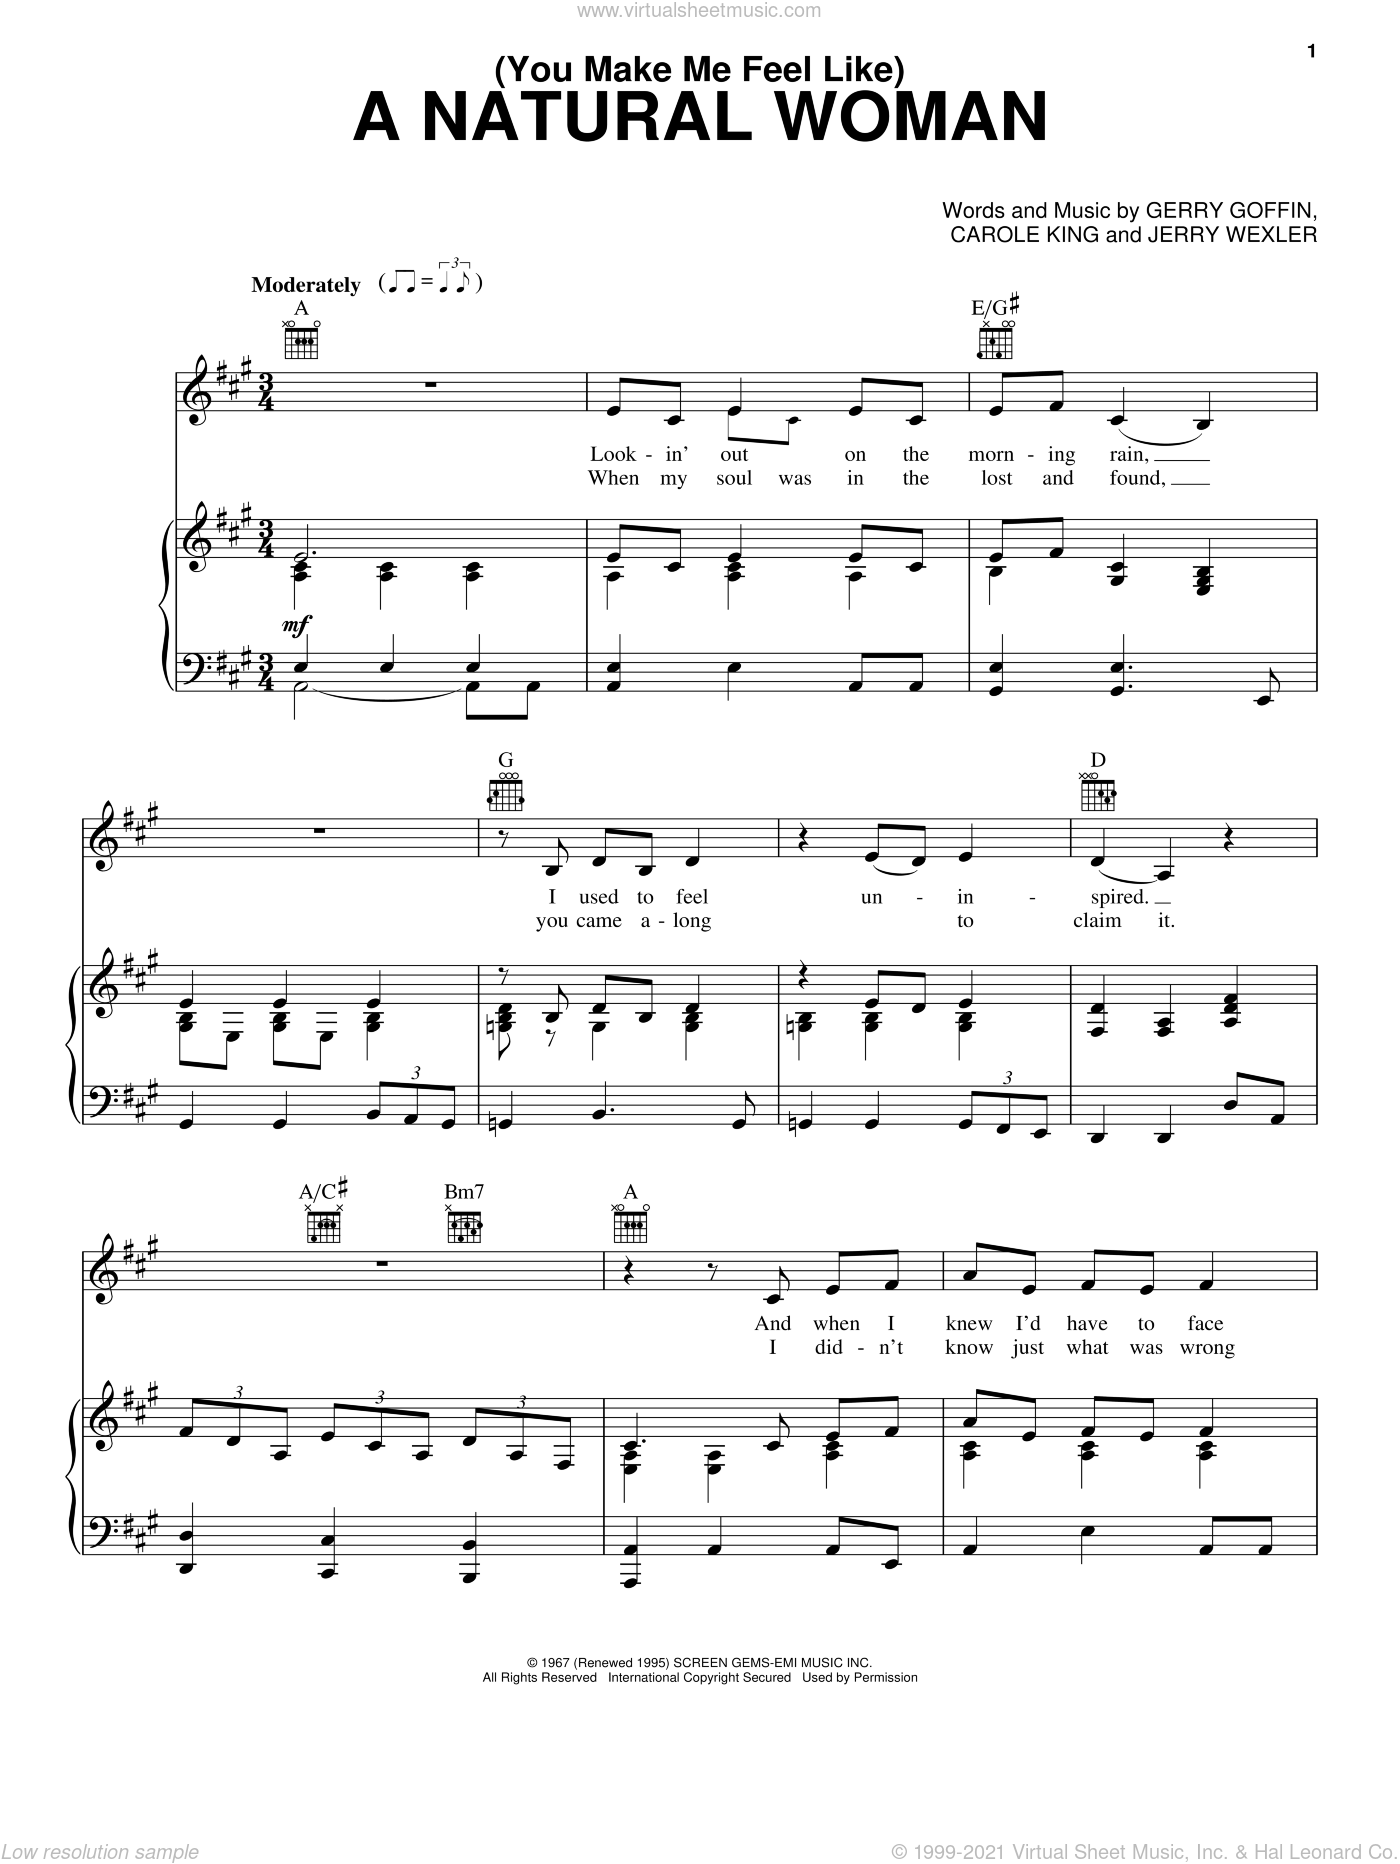 (You Make Me Feel Like) A Natural Woman sheet music for voice, piano or guitar by Aretha Franklin, Carole King, Gerry Goffin and Jerry Wexler, intermediate